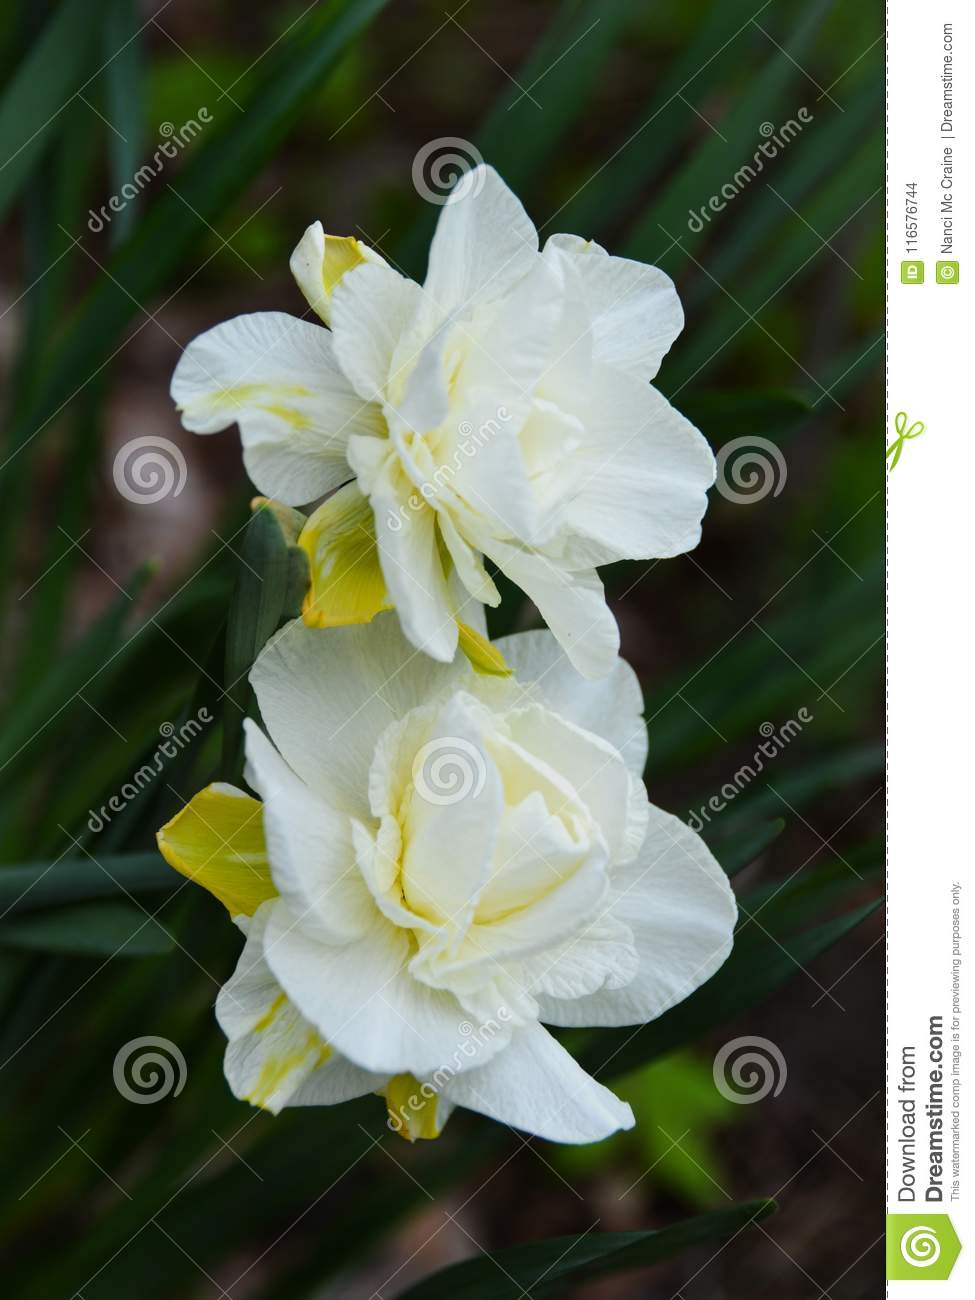 White Daffodils Tinged With Yellow Flower In Garden Stock Photo